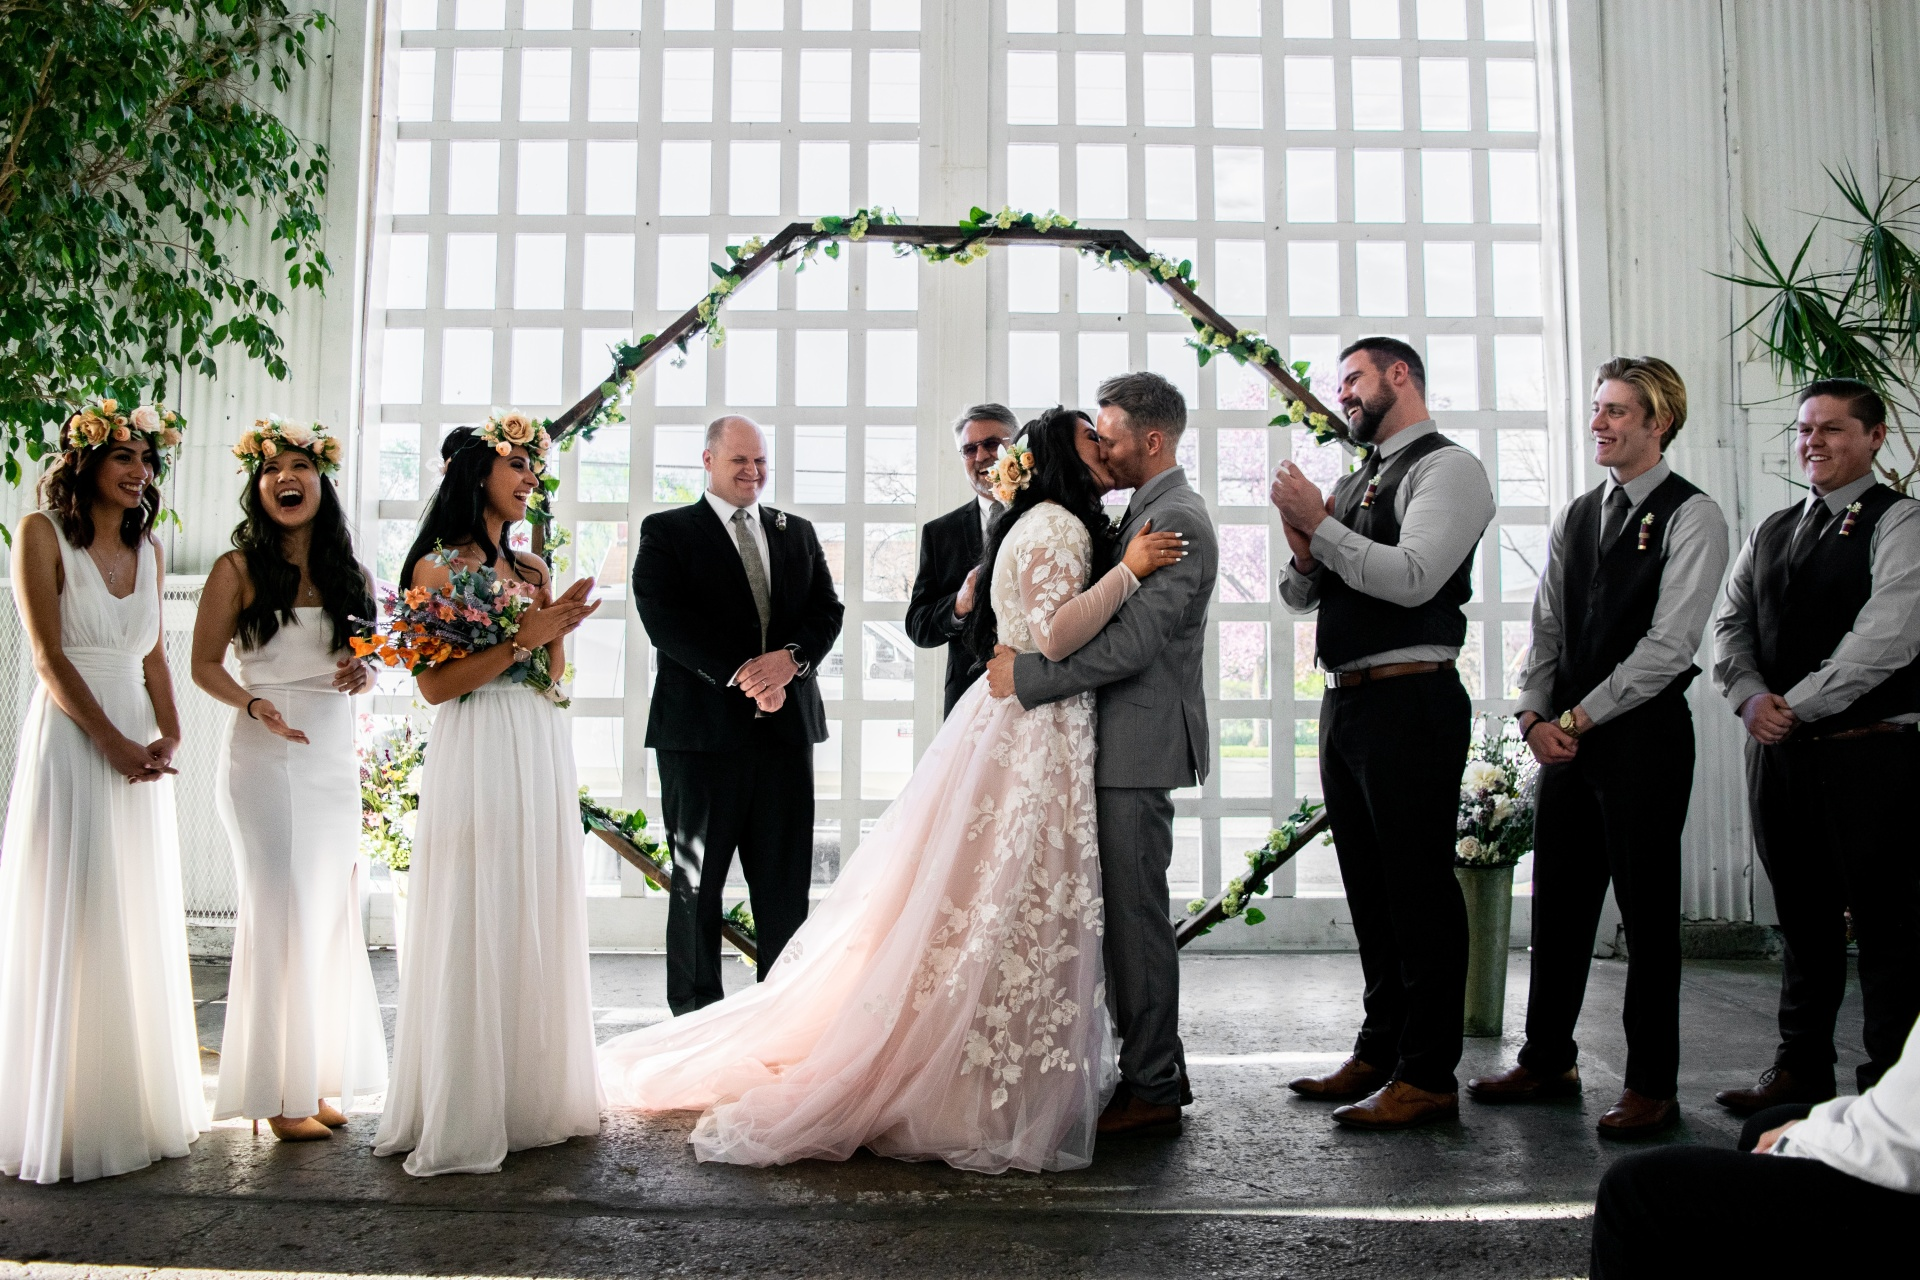 6 Ways To Have Your Dream Wedding Without Blowing All Your Money